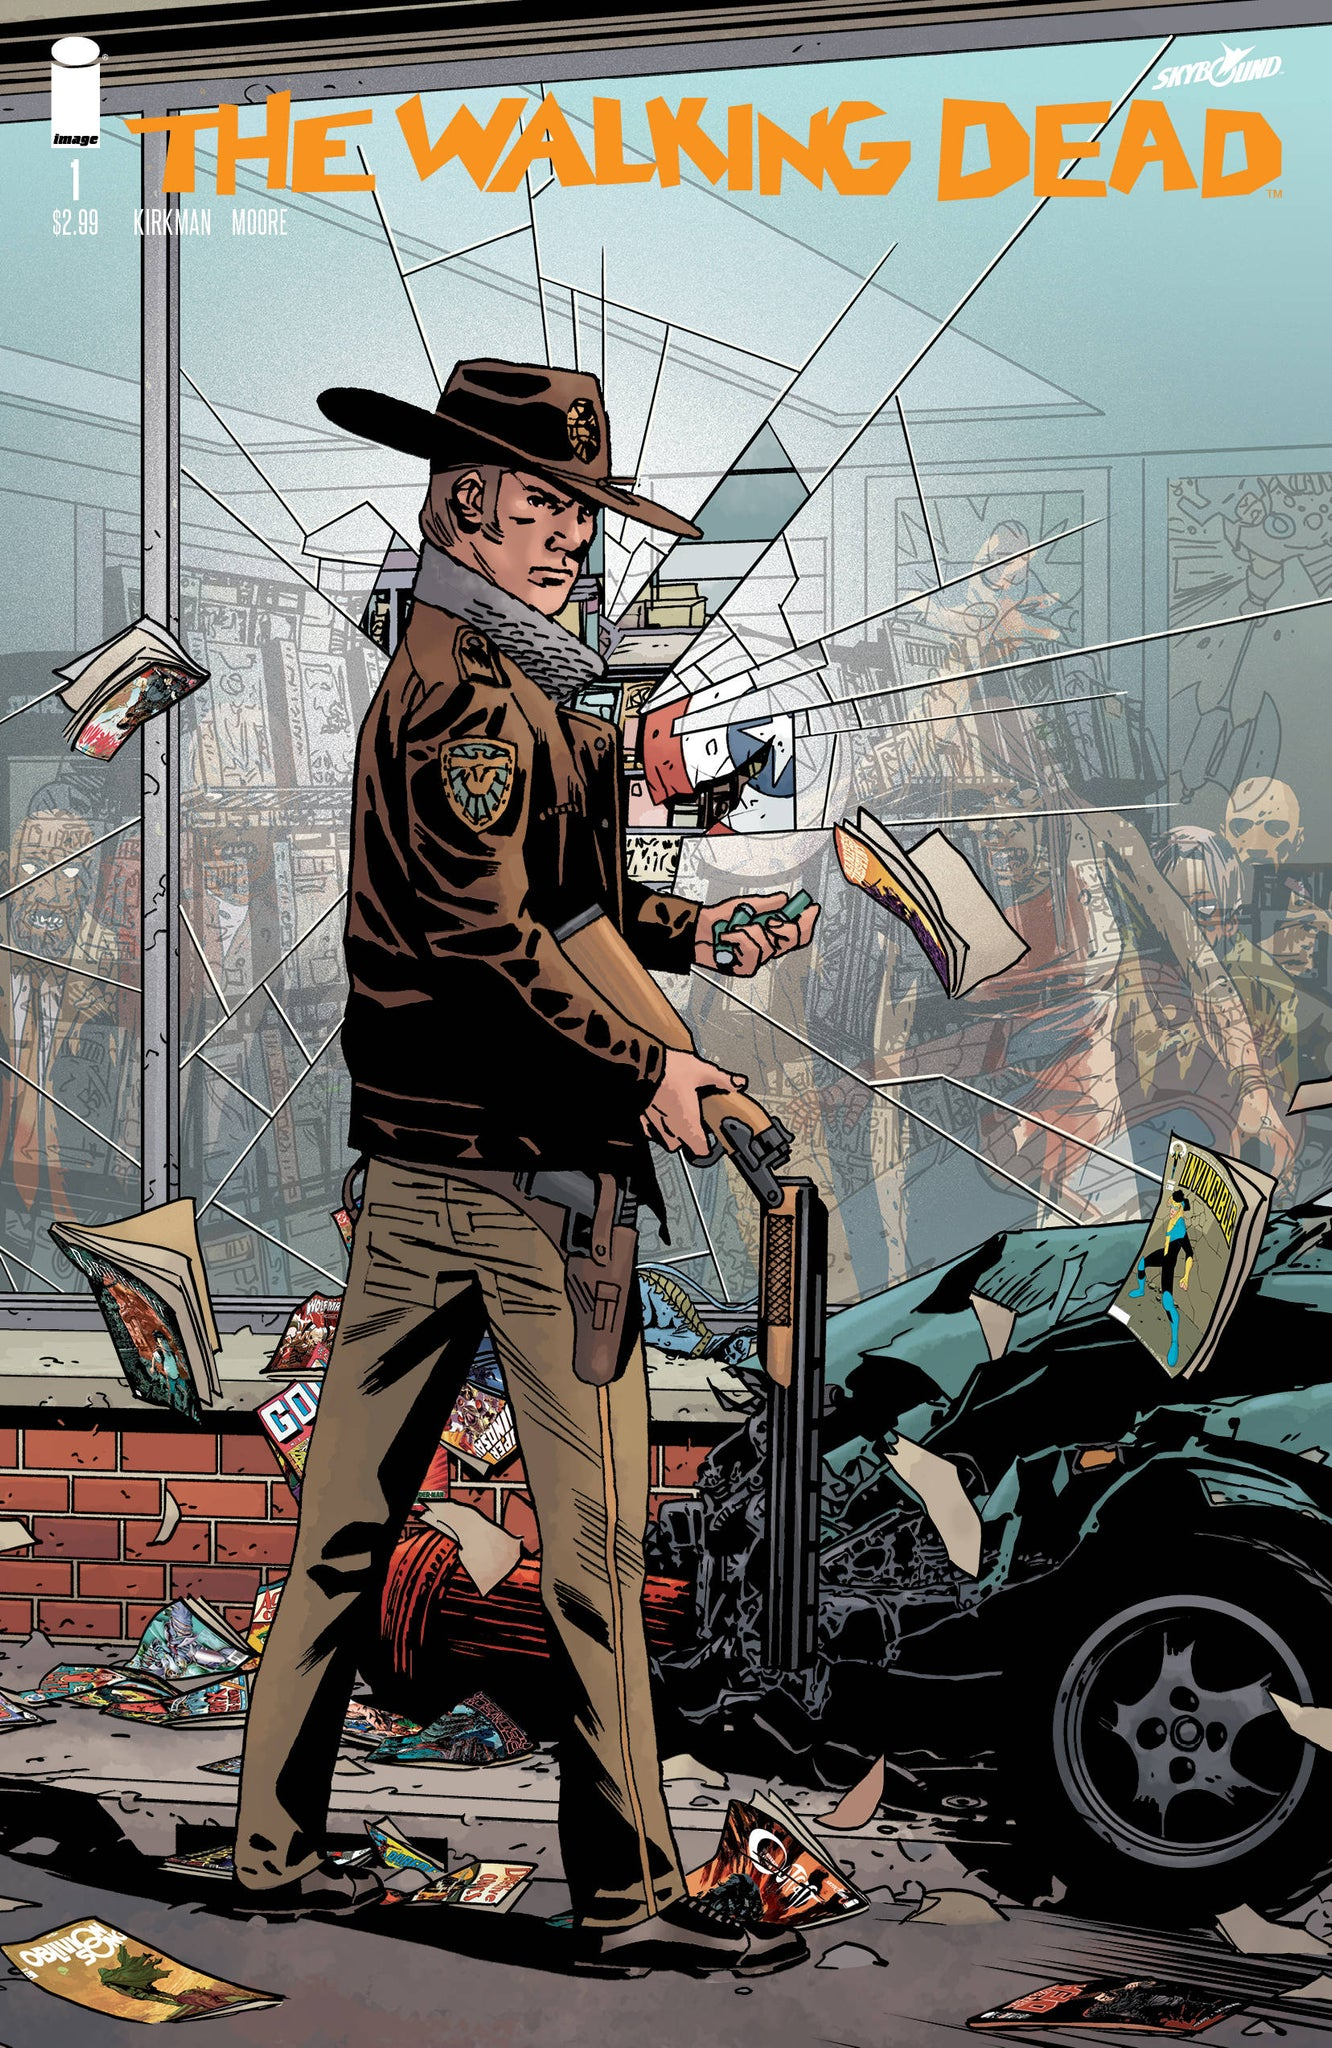 The Walking Dead #1 15th Anniversary